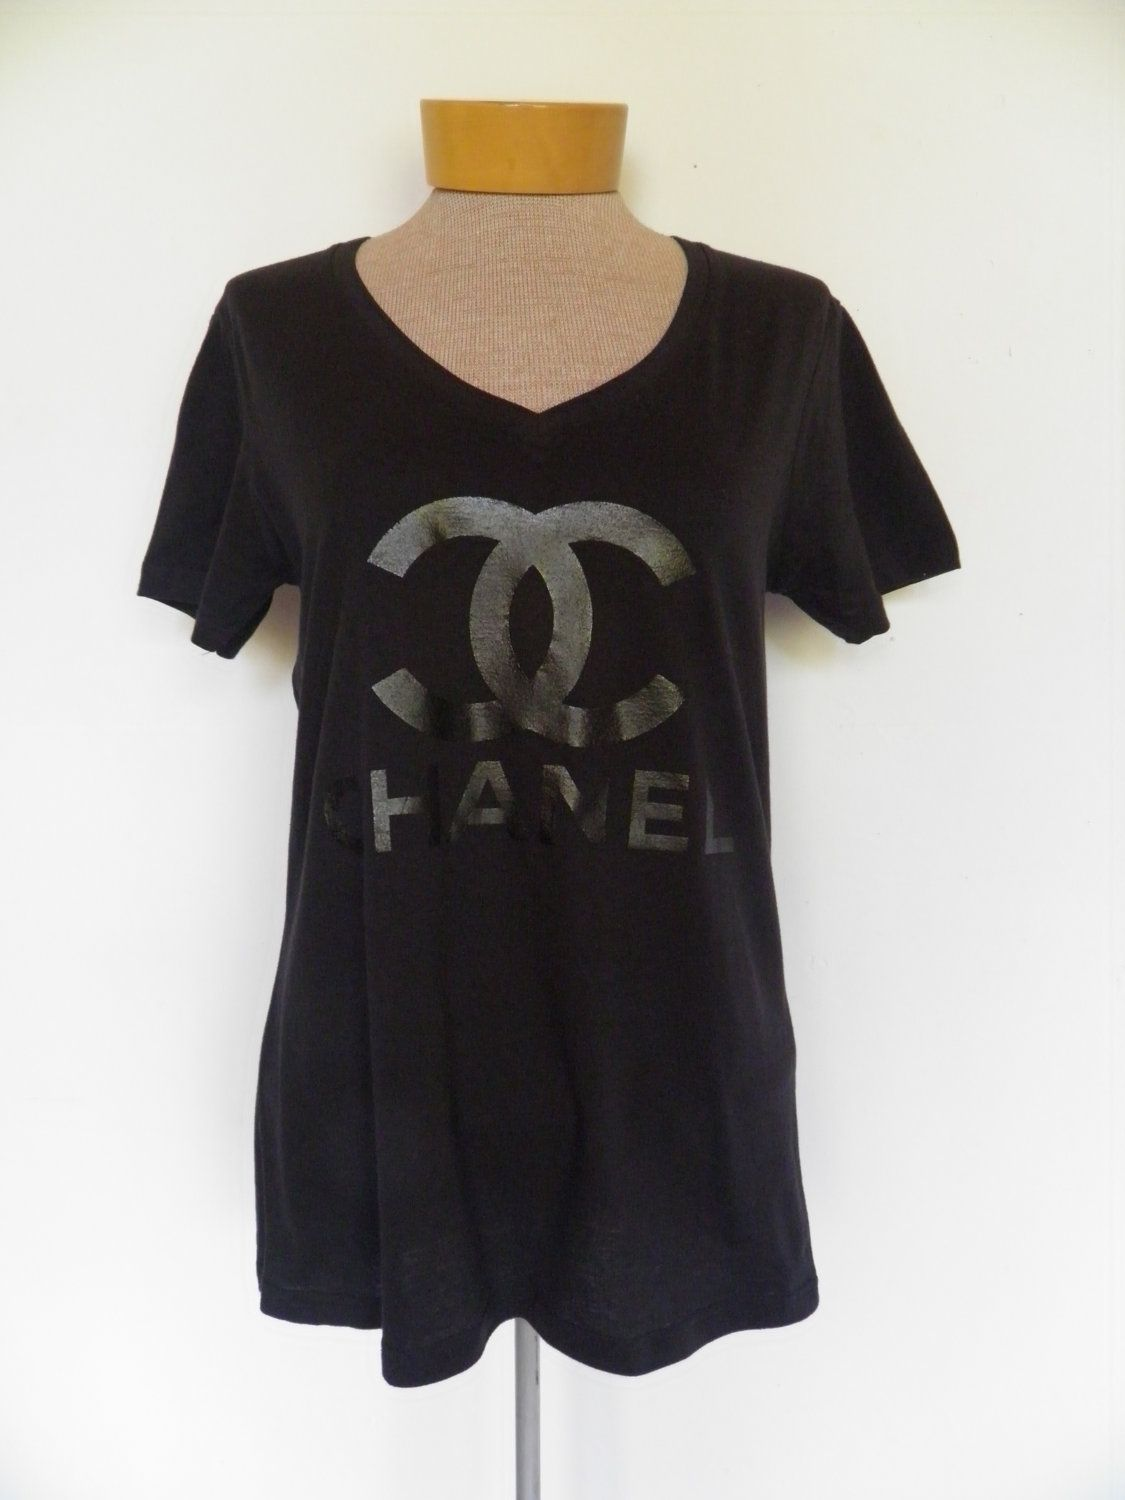 Black t shirt dress etsy - Black On Black Vinyl Chanel Logo V Neck T Shirt 26 00 Via Etsy